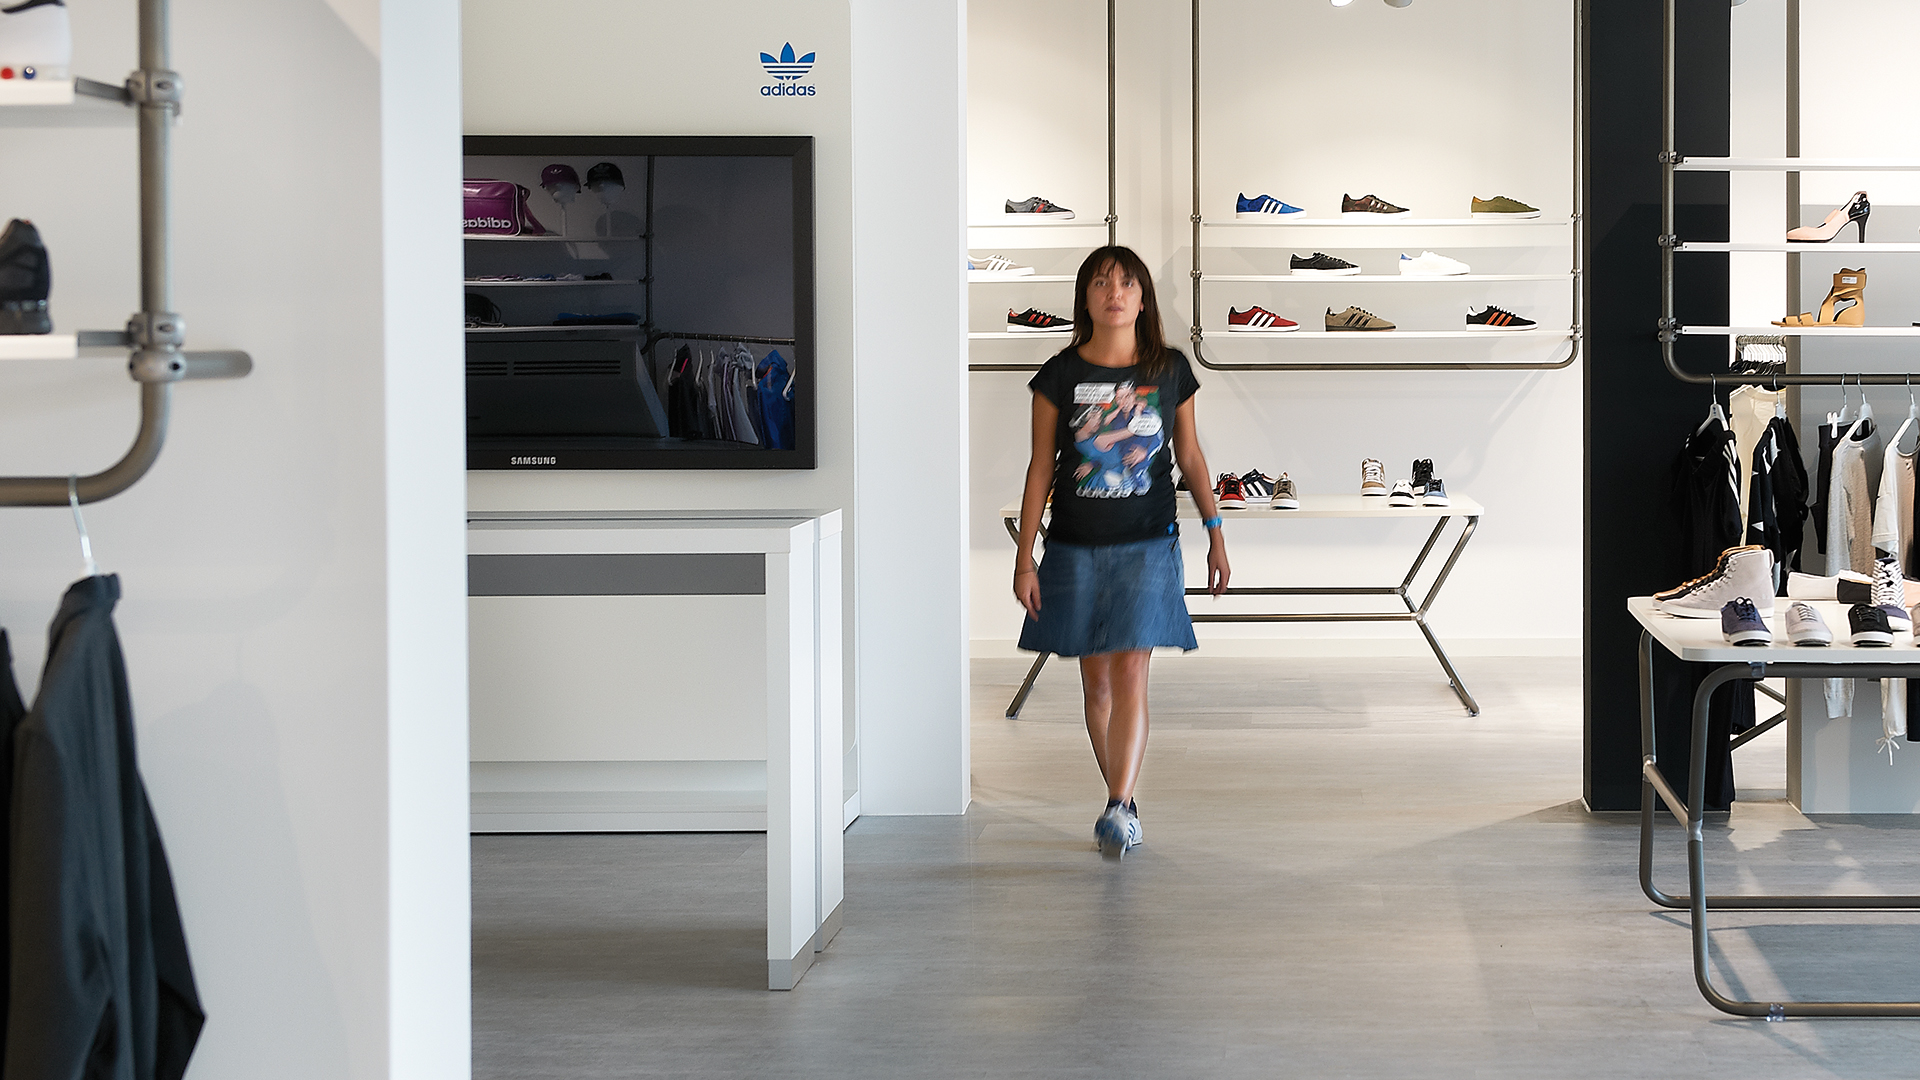 Dart stages the mediatecture for adidas for VSIT 2012